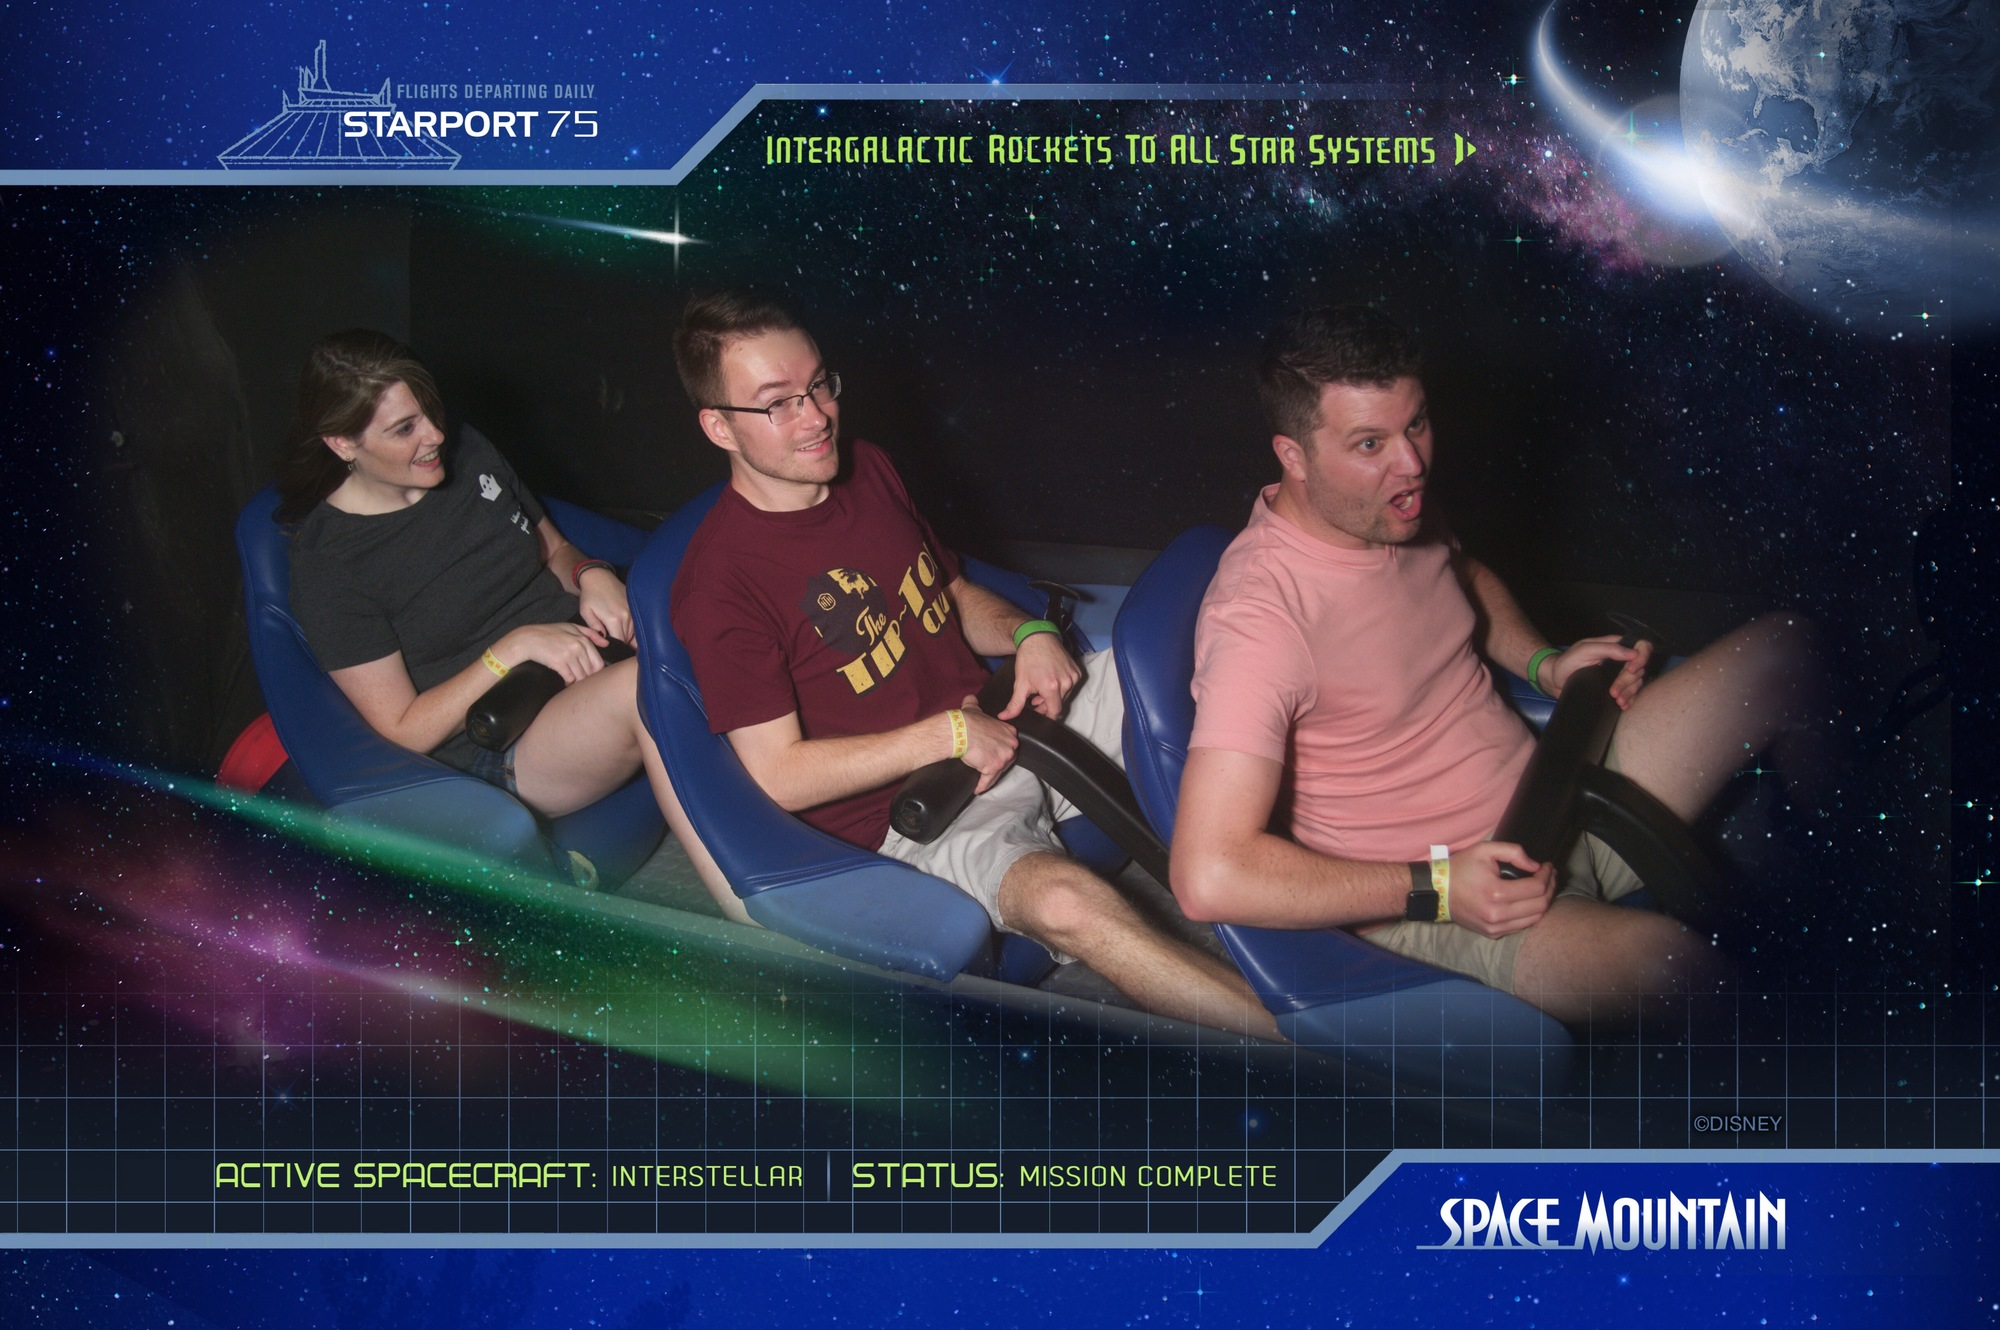 Justin-space-mountain